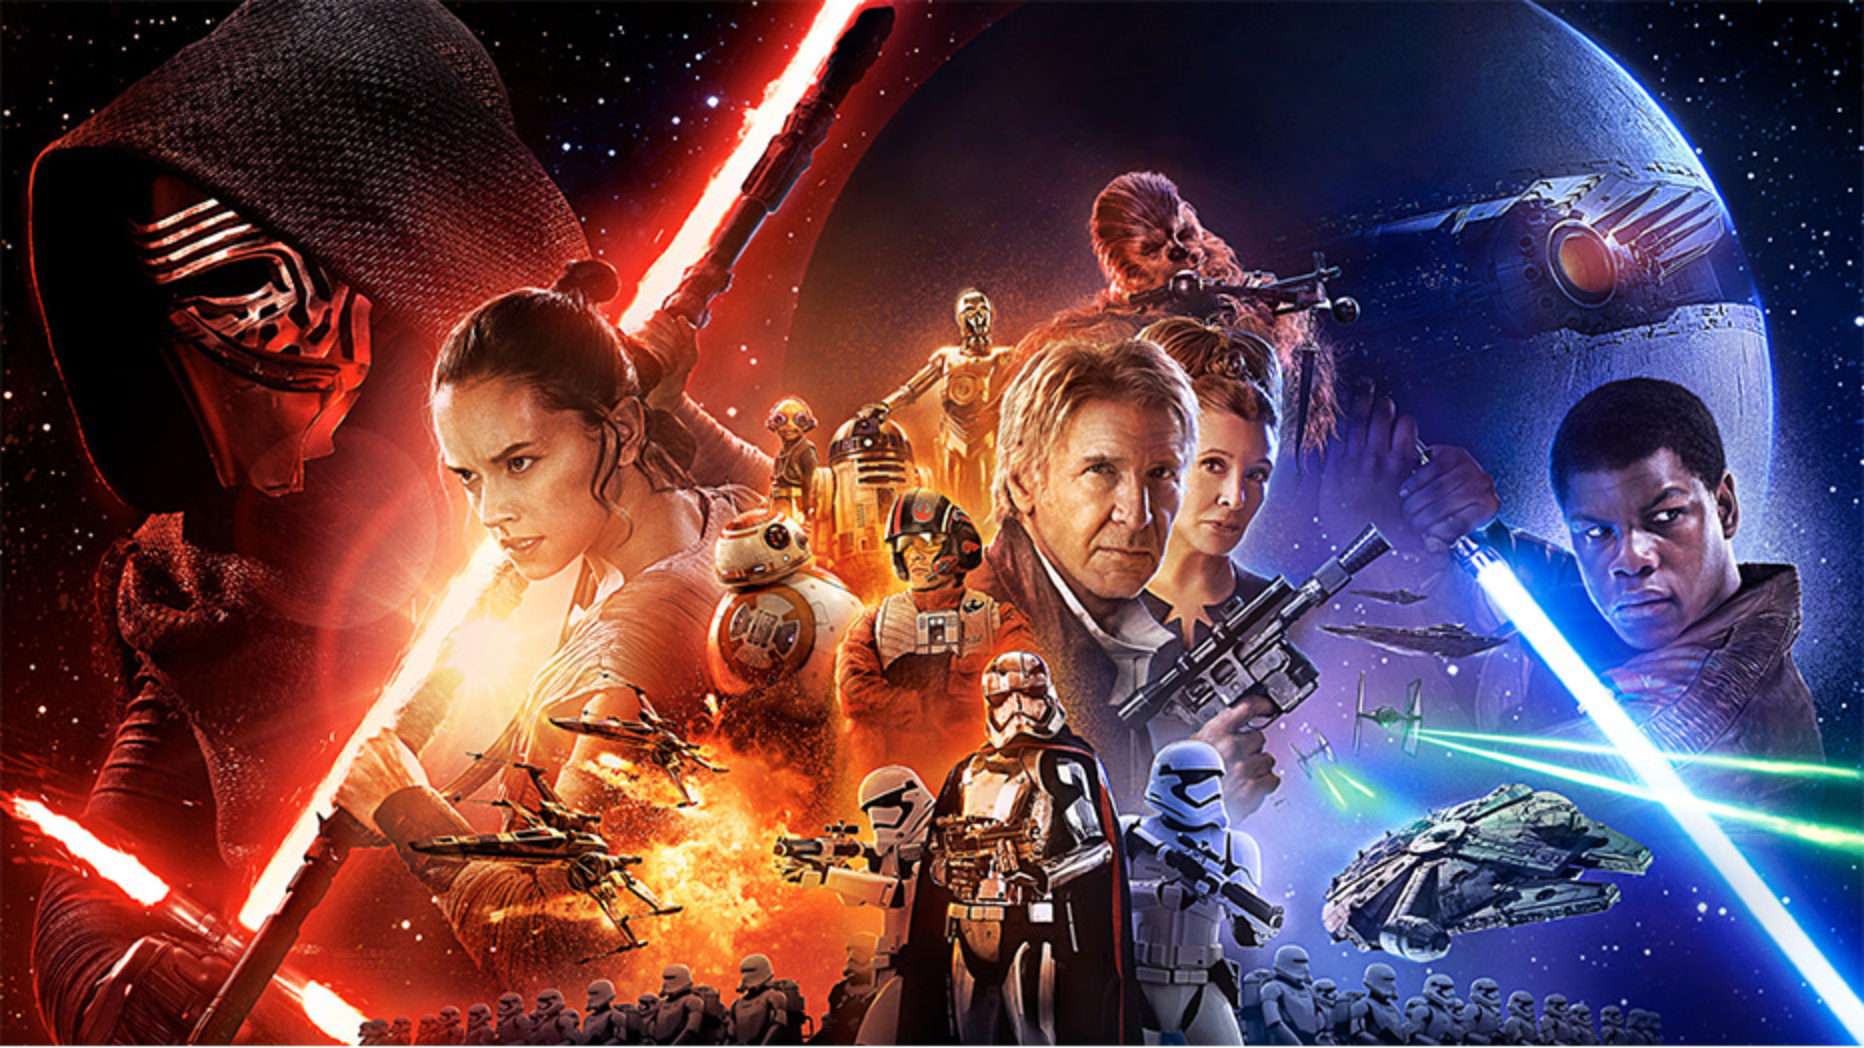 [100% Spoiler-Free] Star Wars: The Force Awakens Review   IMAX 3D